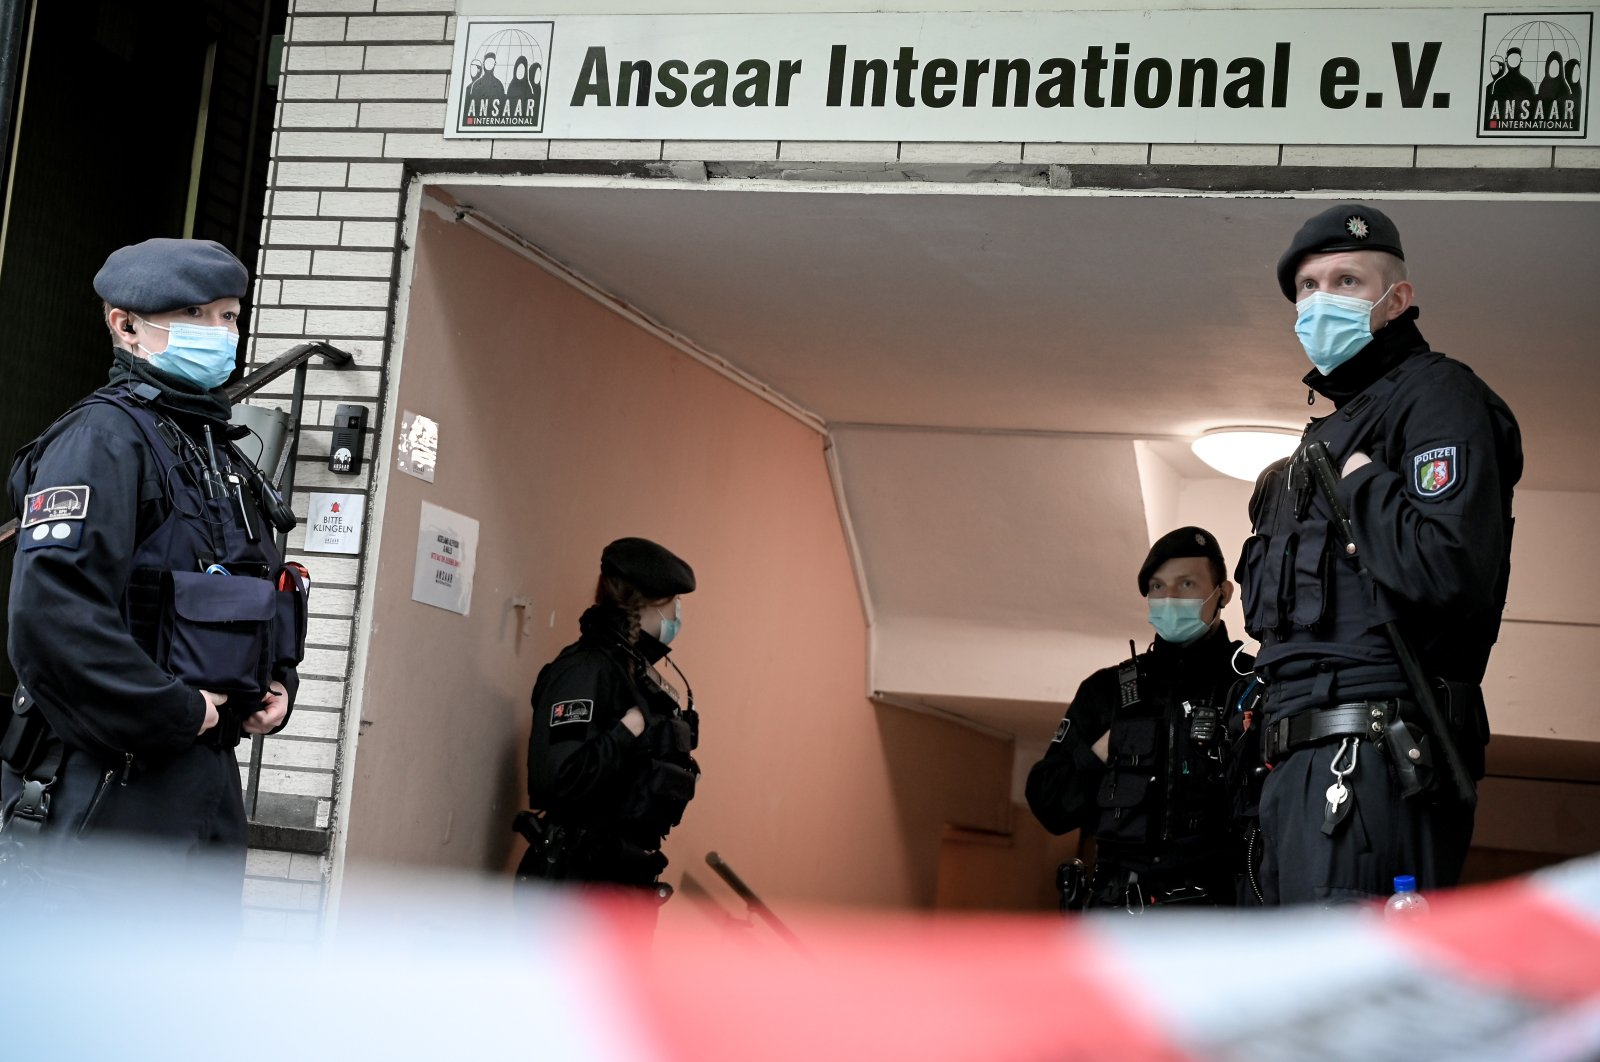 Police search the premises of the Ansaar International aid organization in Duesseldorf, Germany, May 5, 2021. (EPA Photo)